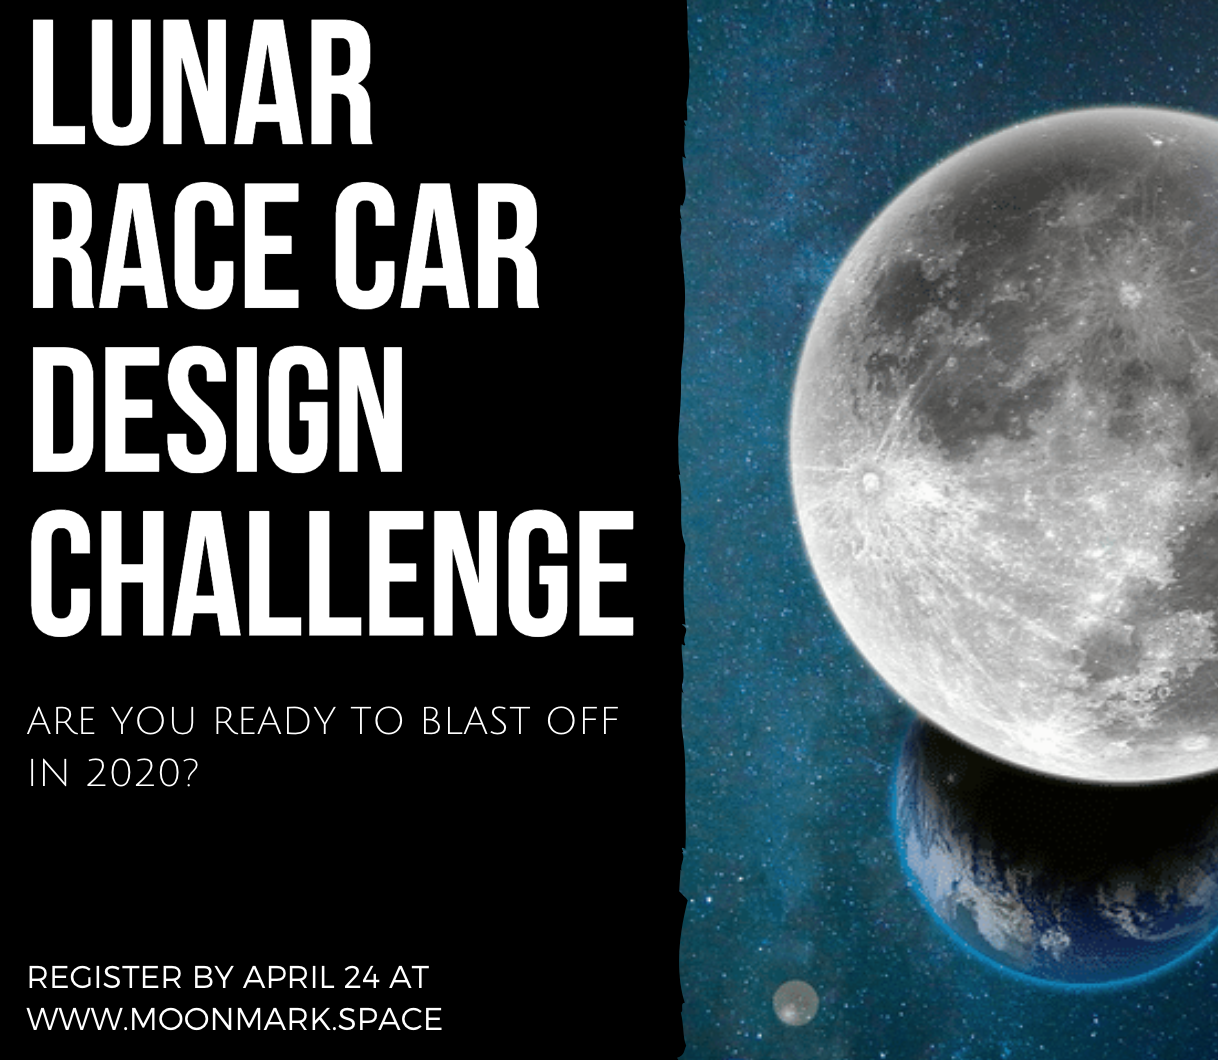 Lunar Race Car Design Challenge